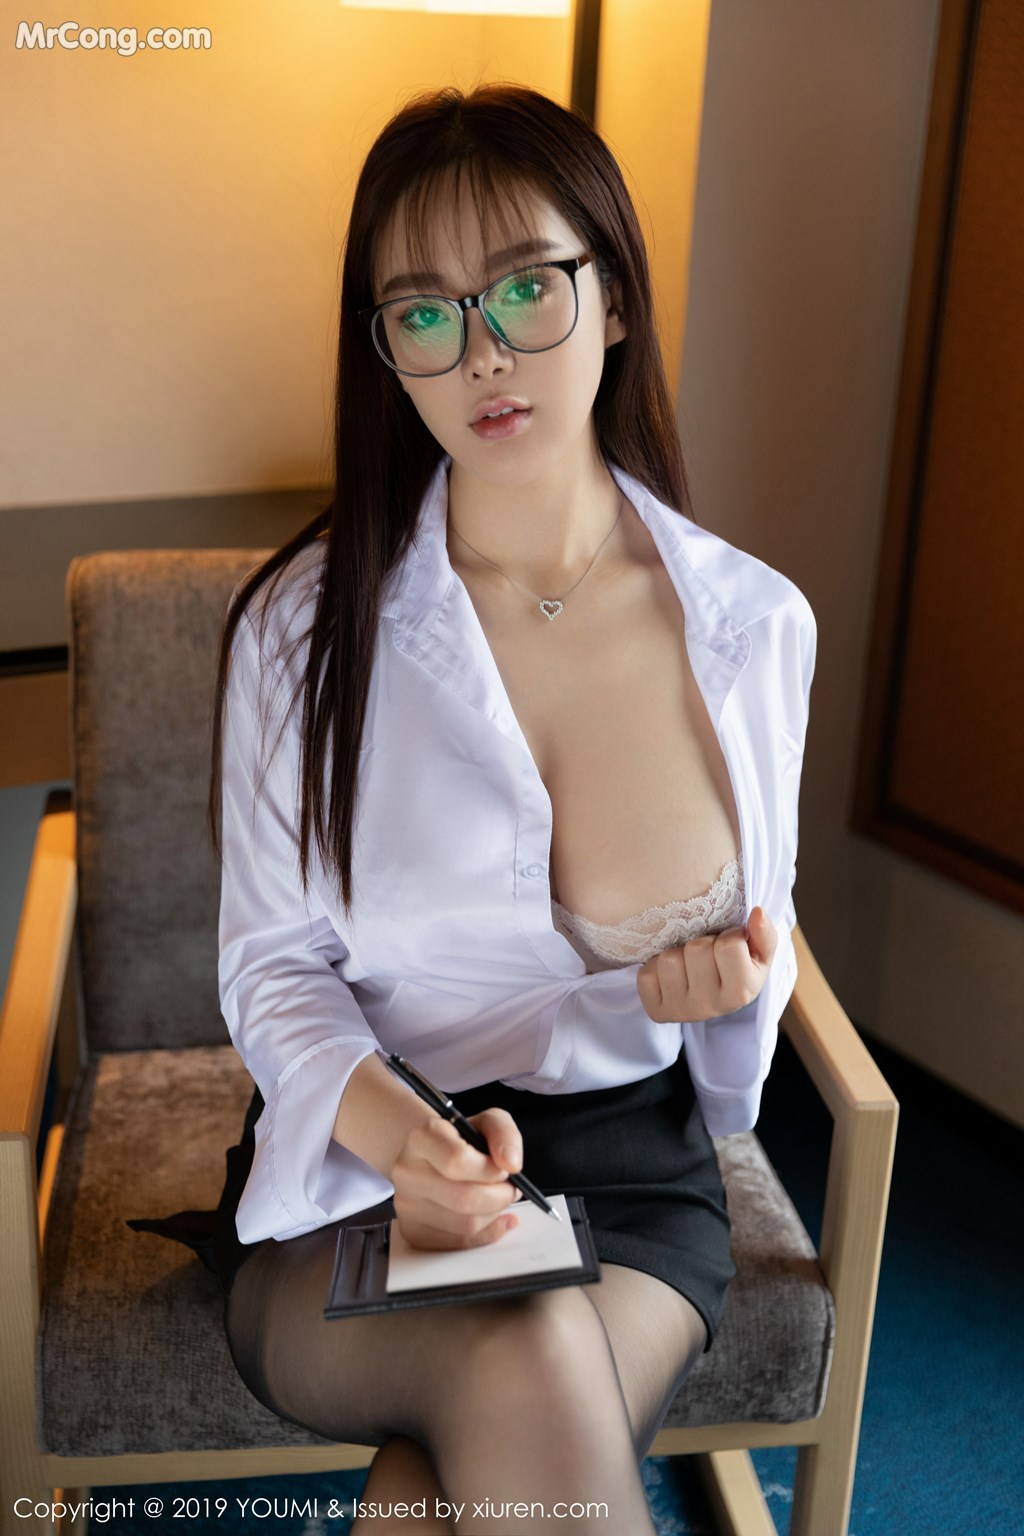 Image YouMi-Vol.320-Silvia-MrCong.com-009 in post YouMi Vol.320: 易阳Silvia (65 ảnh)